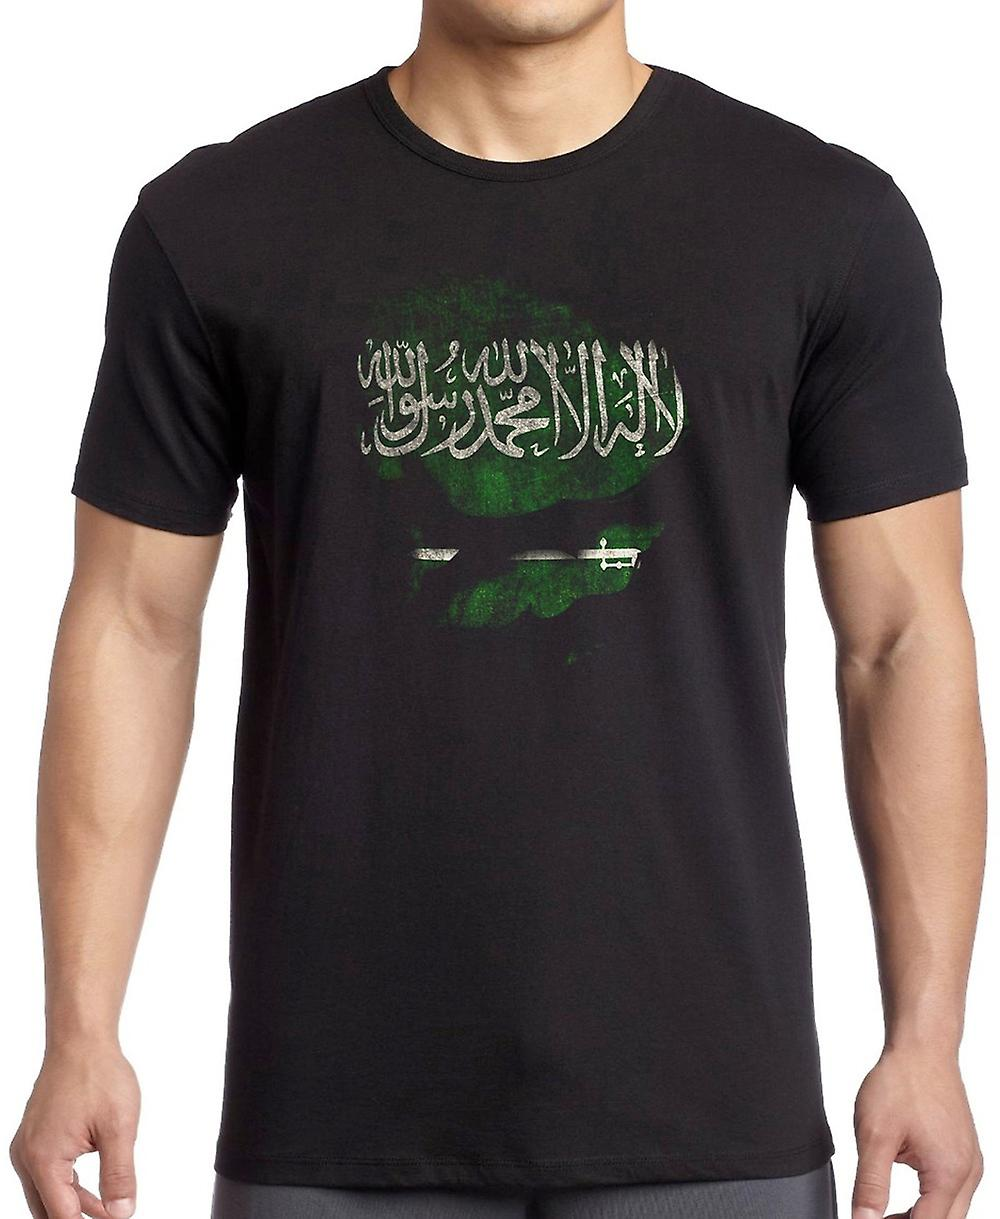 Saudia Arabian Saudi Arabia Ripped Effect Under Shirt Women T Shirt